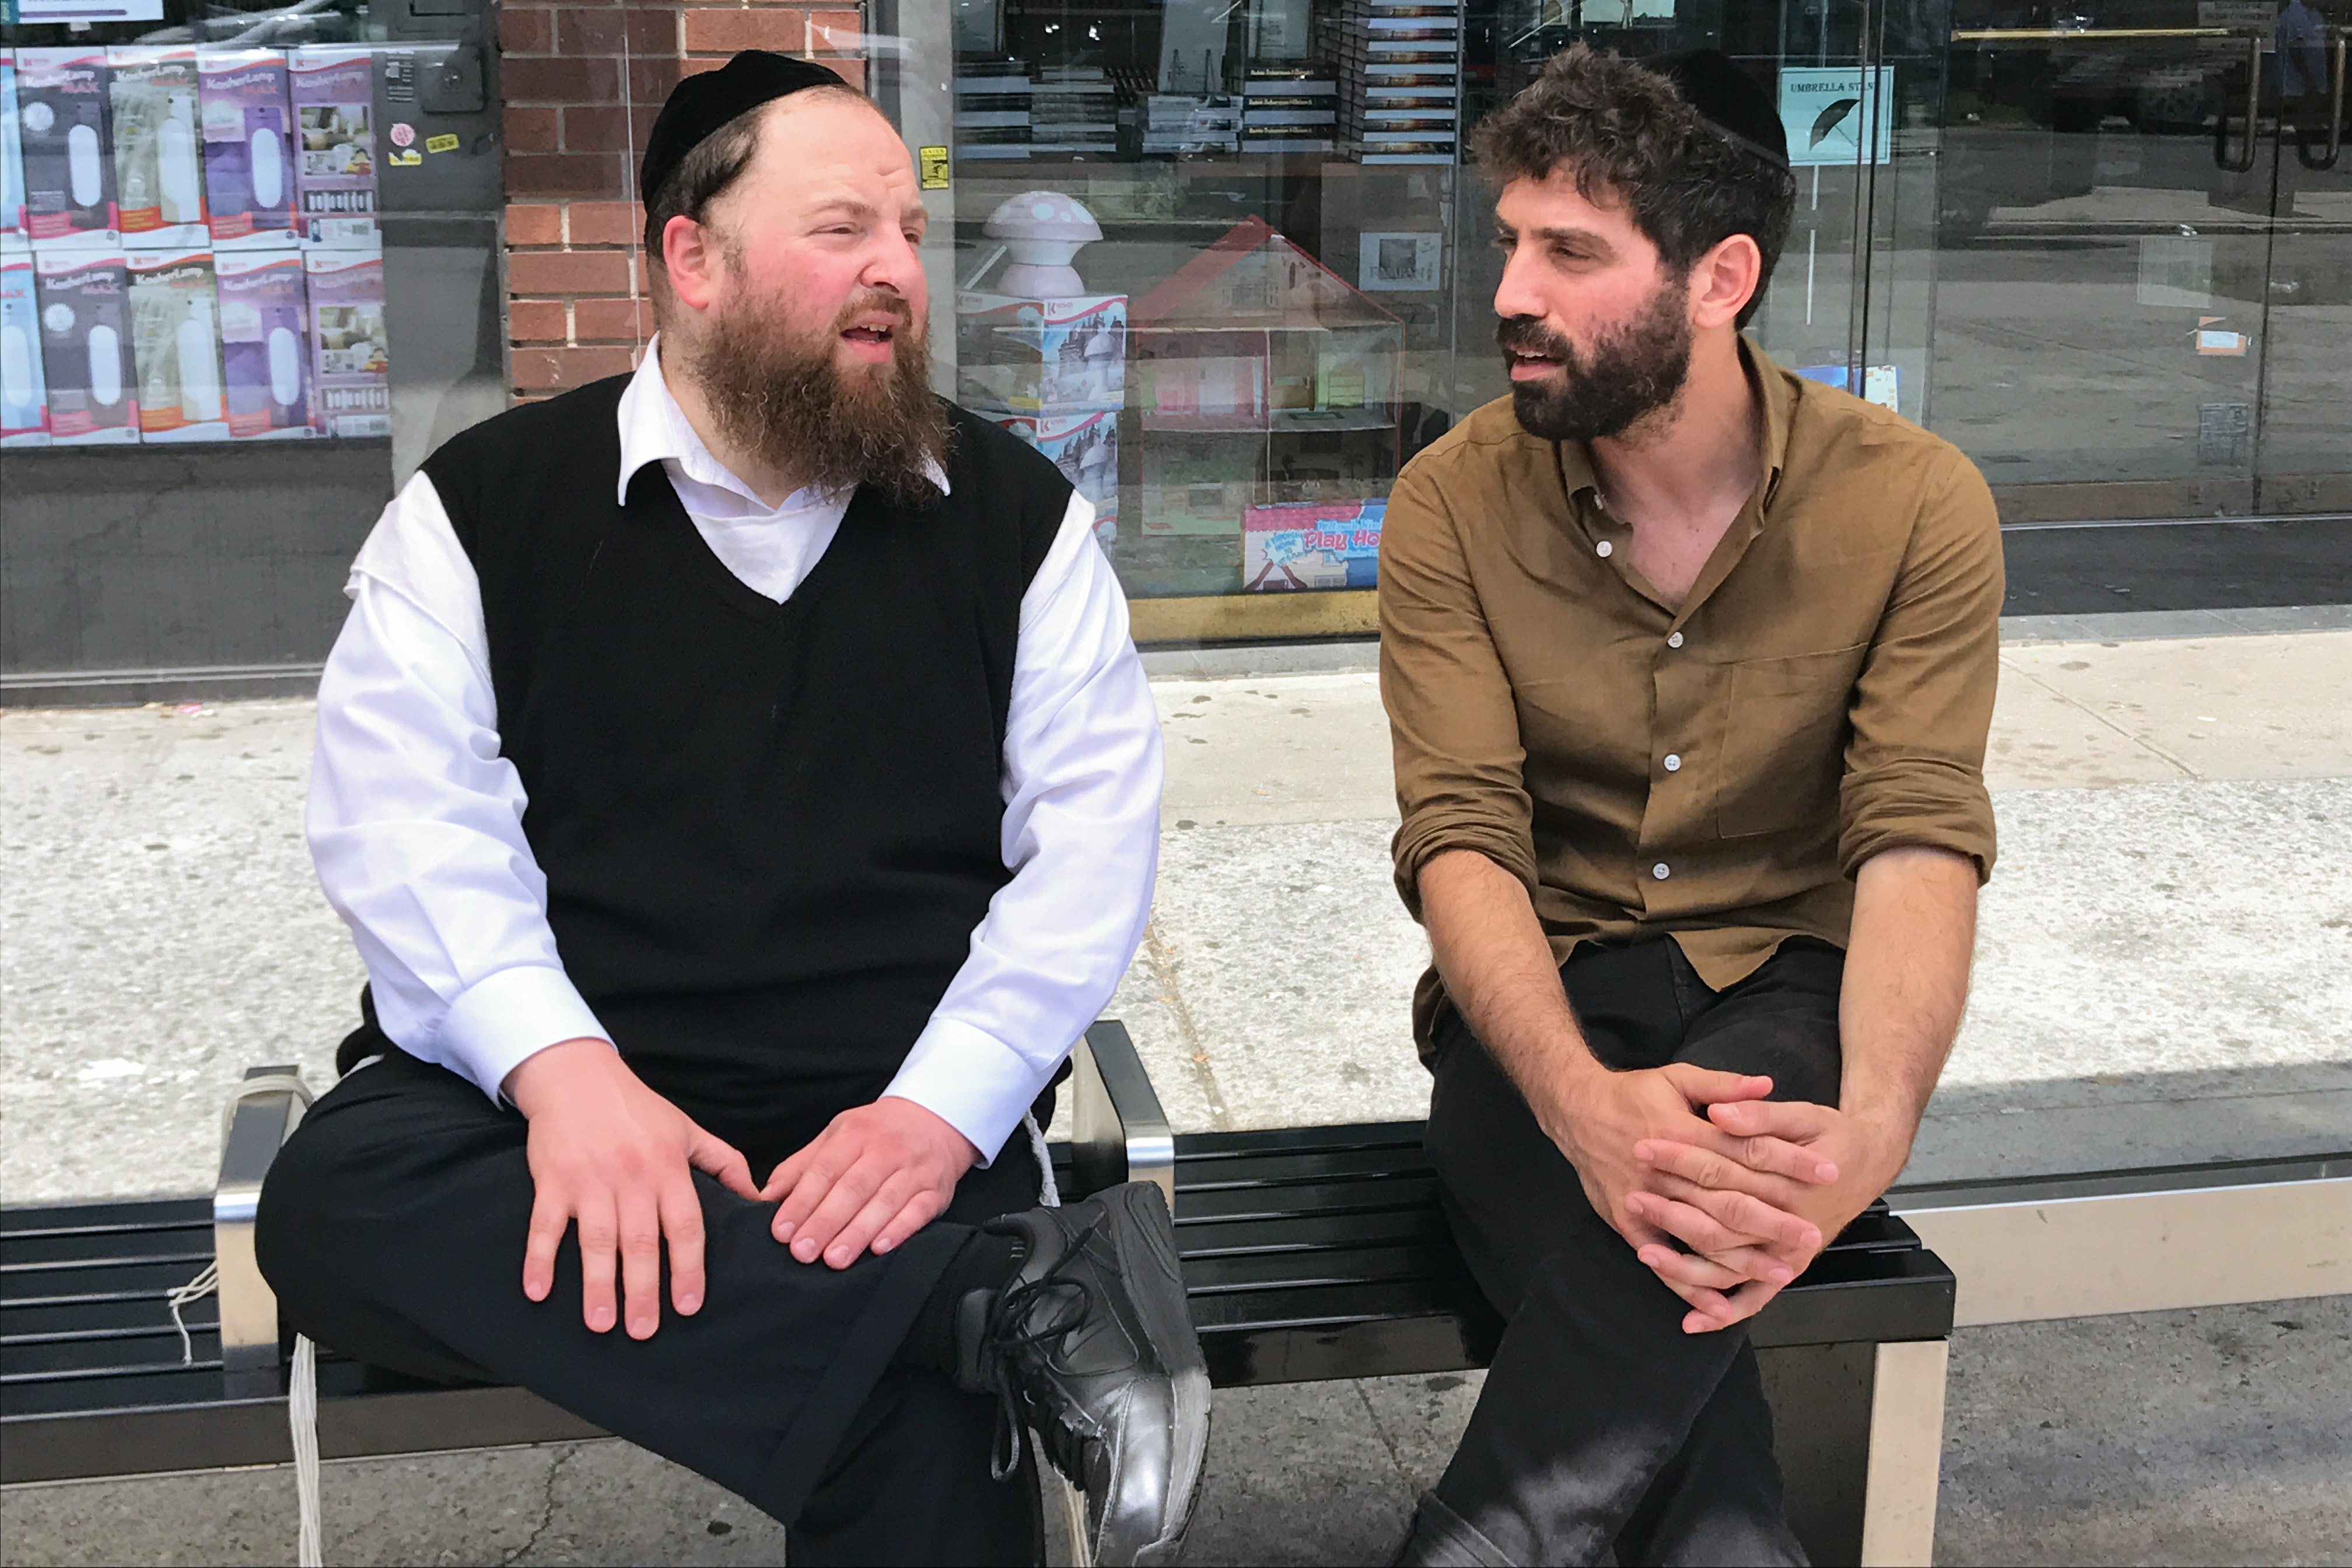 The Orthodox star of Menashe on his unorthodox rise to fame.